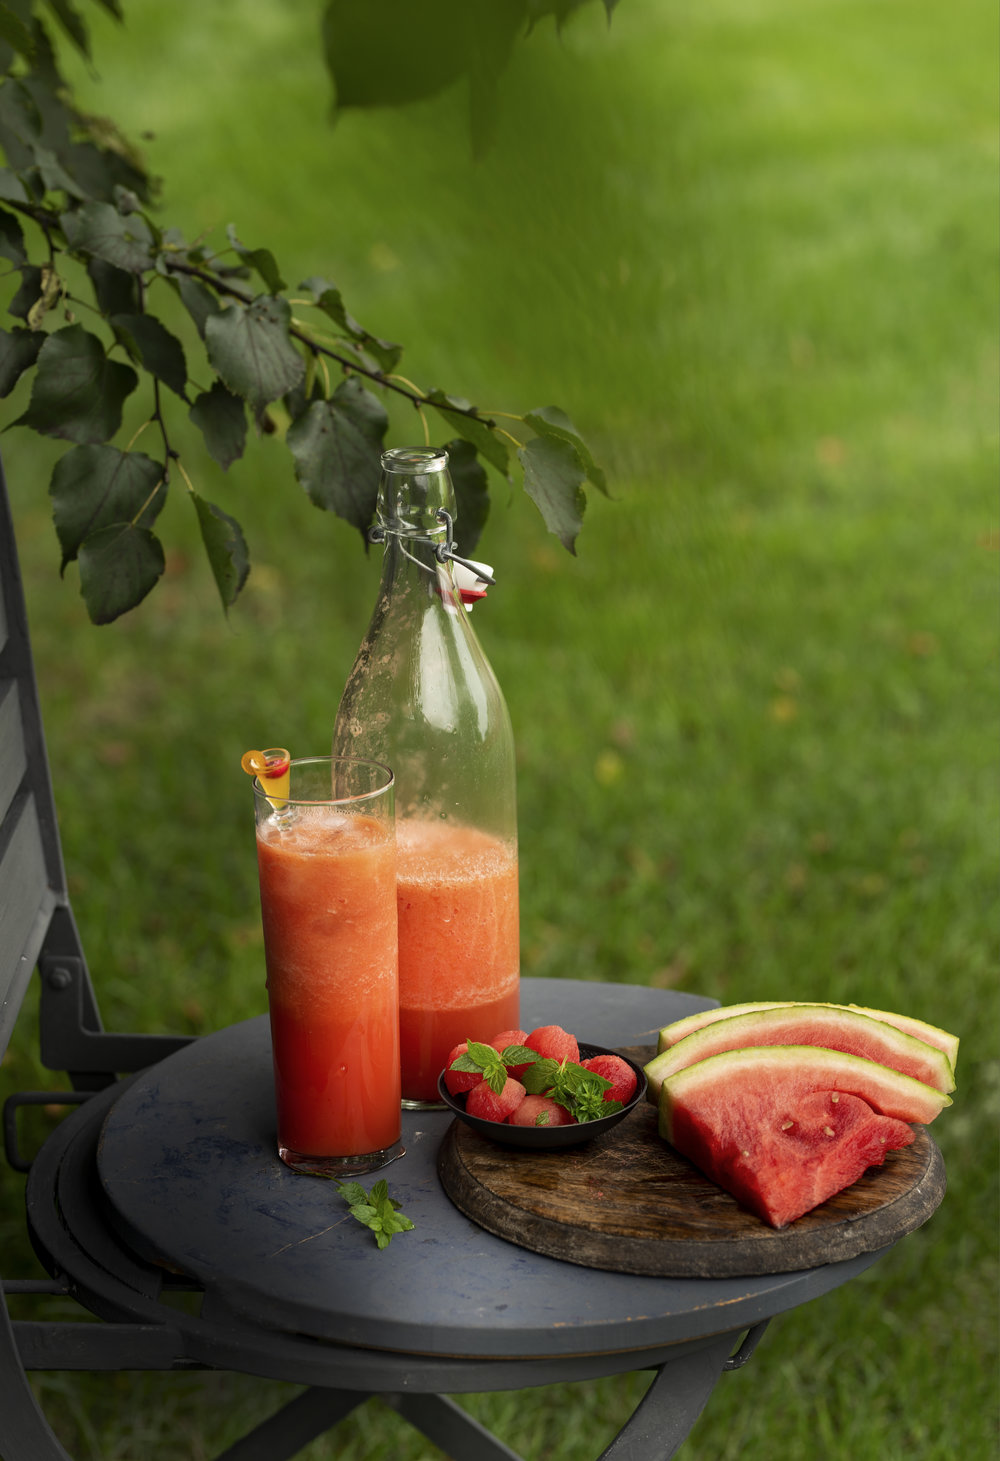 Watermelon-Cantilope-Carrot-TomatoJuice-Outdoor-HR-SimiJois-2018.jpg